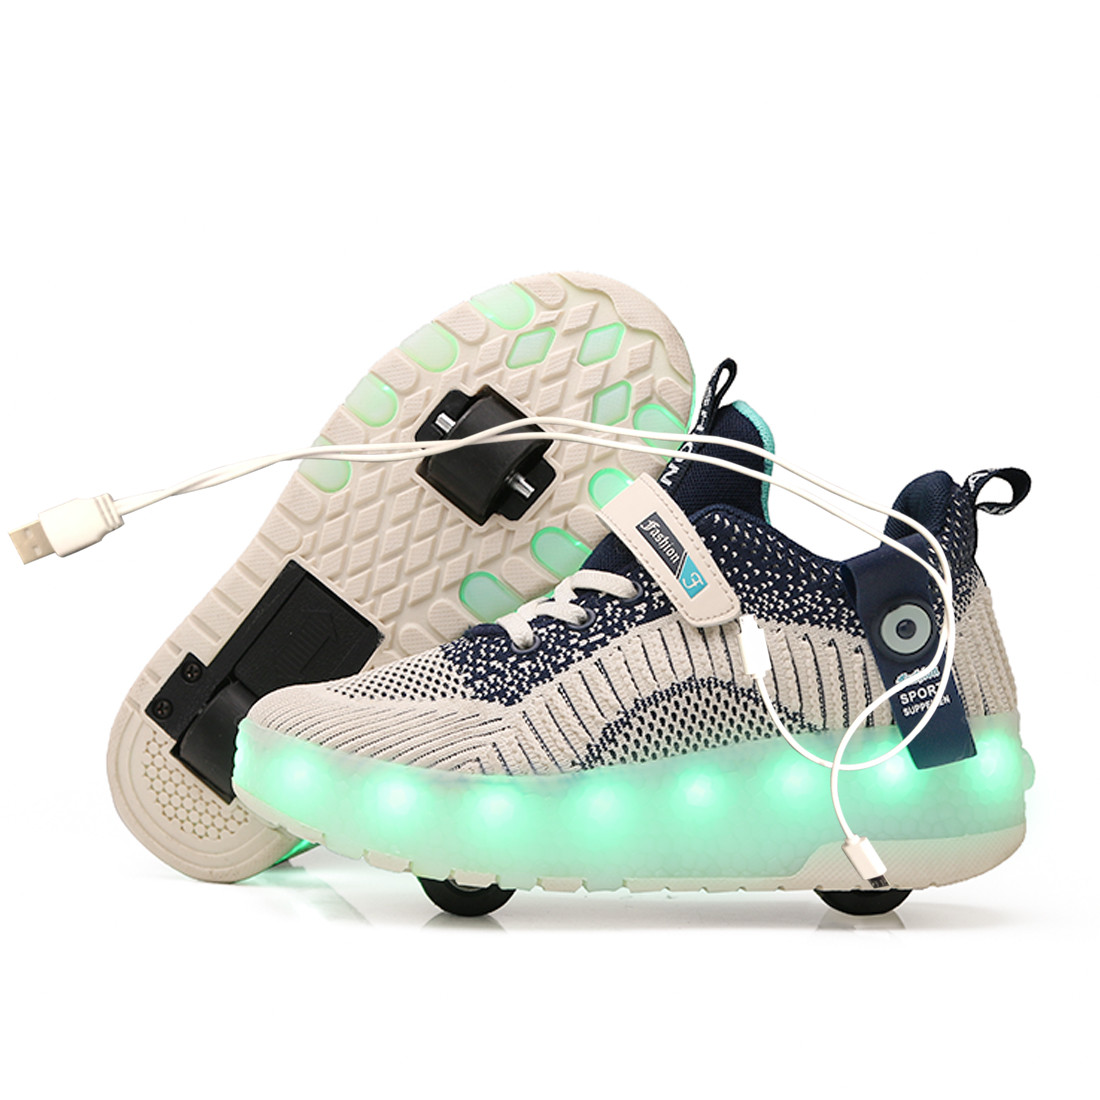 2020 New USB charge LED Colorful Children Kids Fashion Sneakers with Two Wheels Roller Skate Shoes Boys Girls Shoes